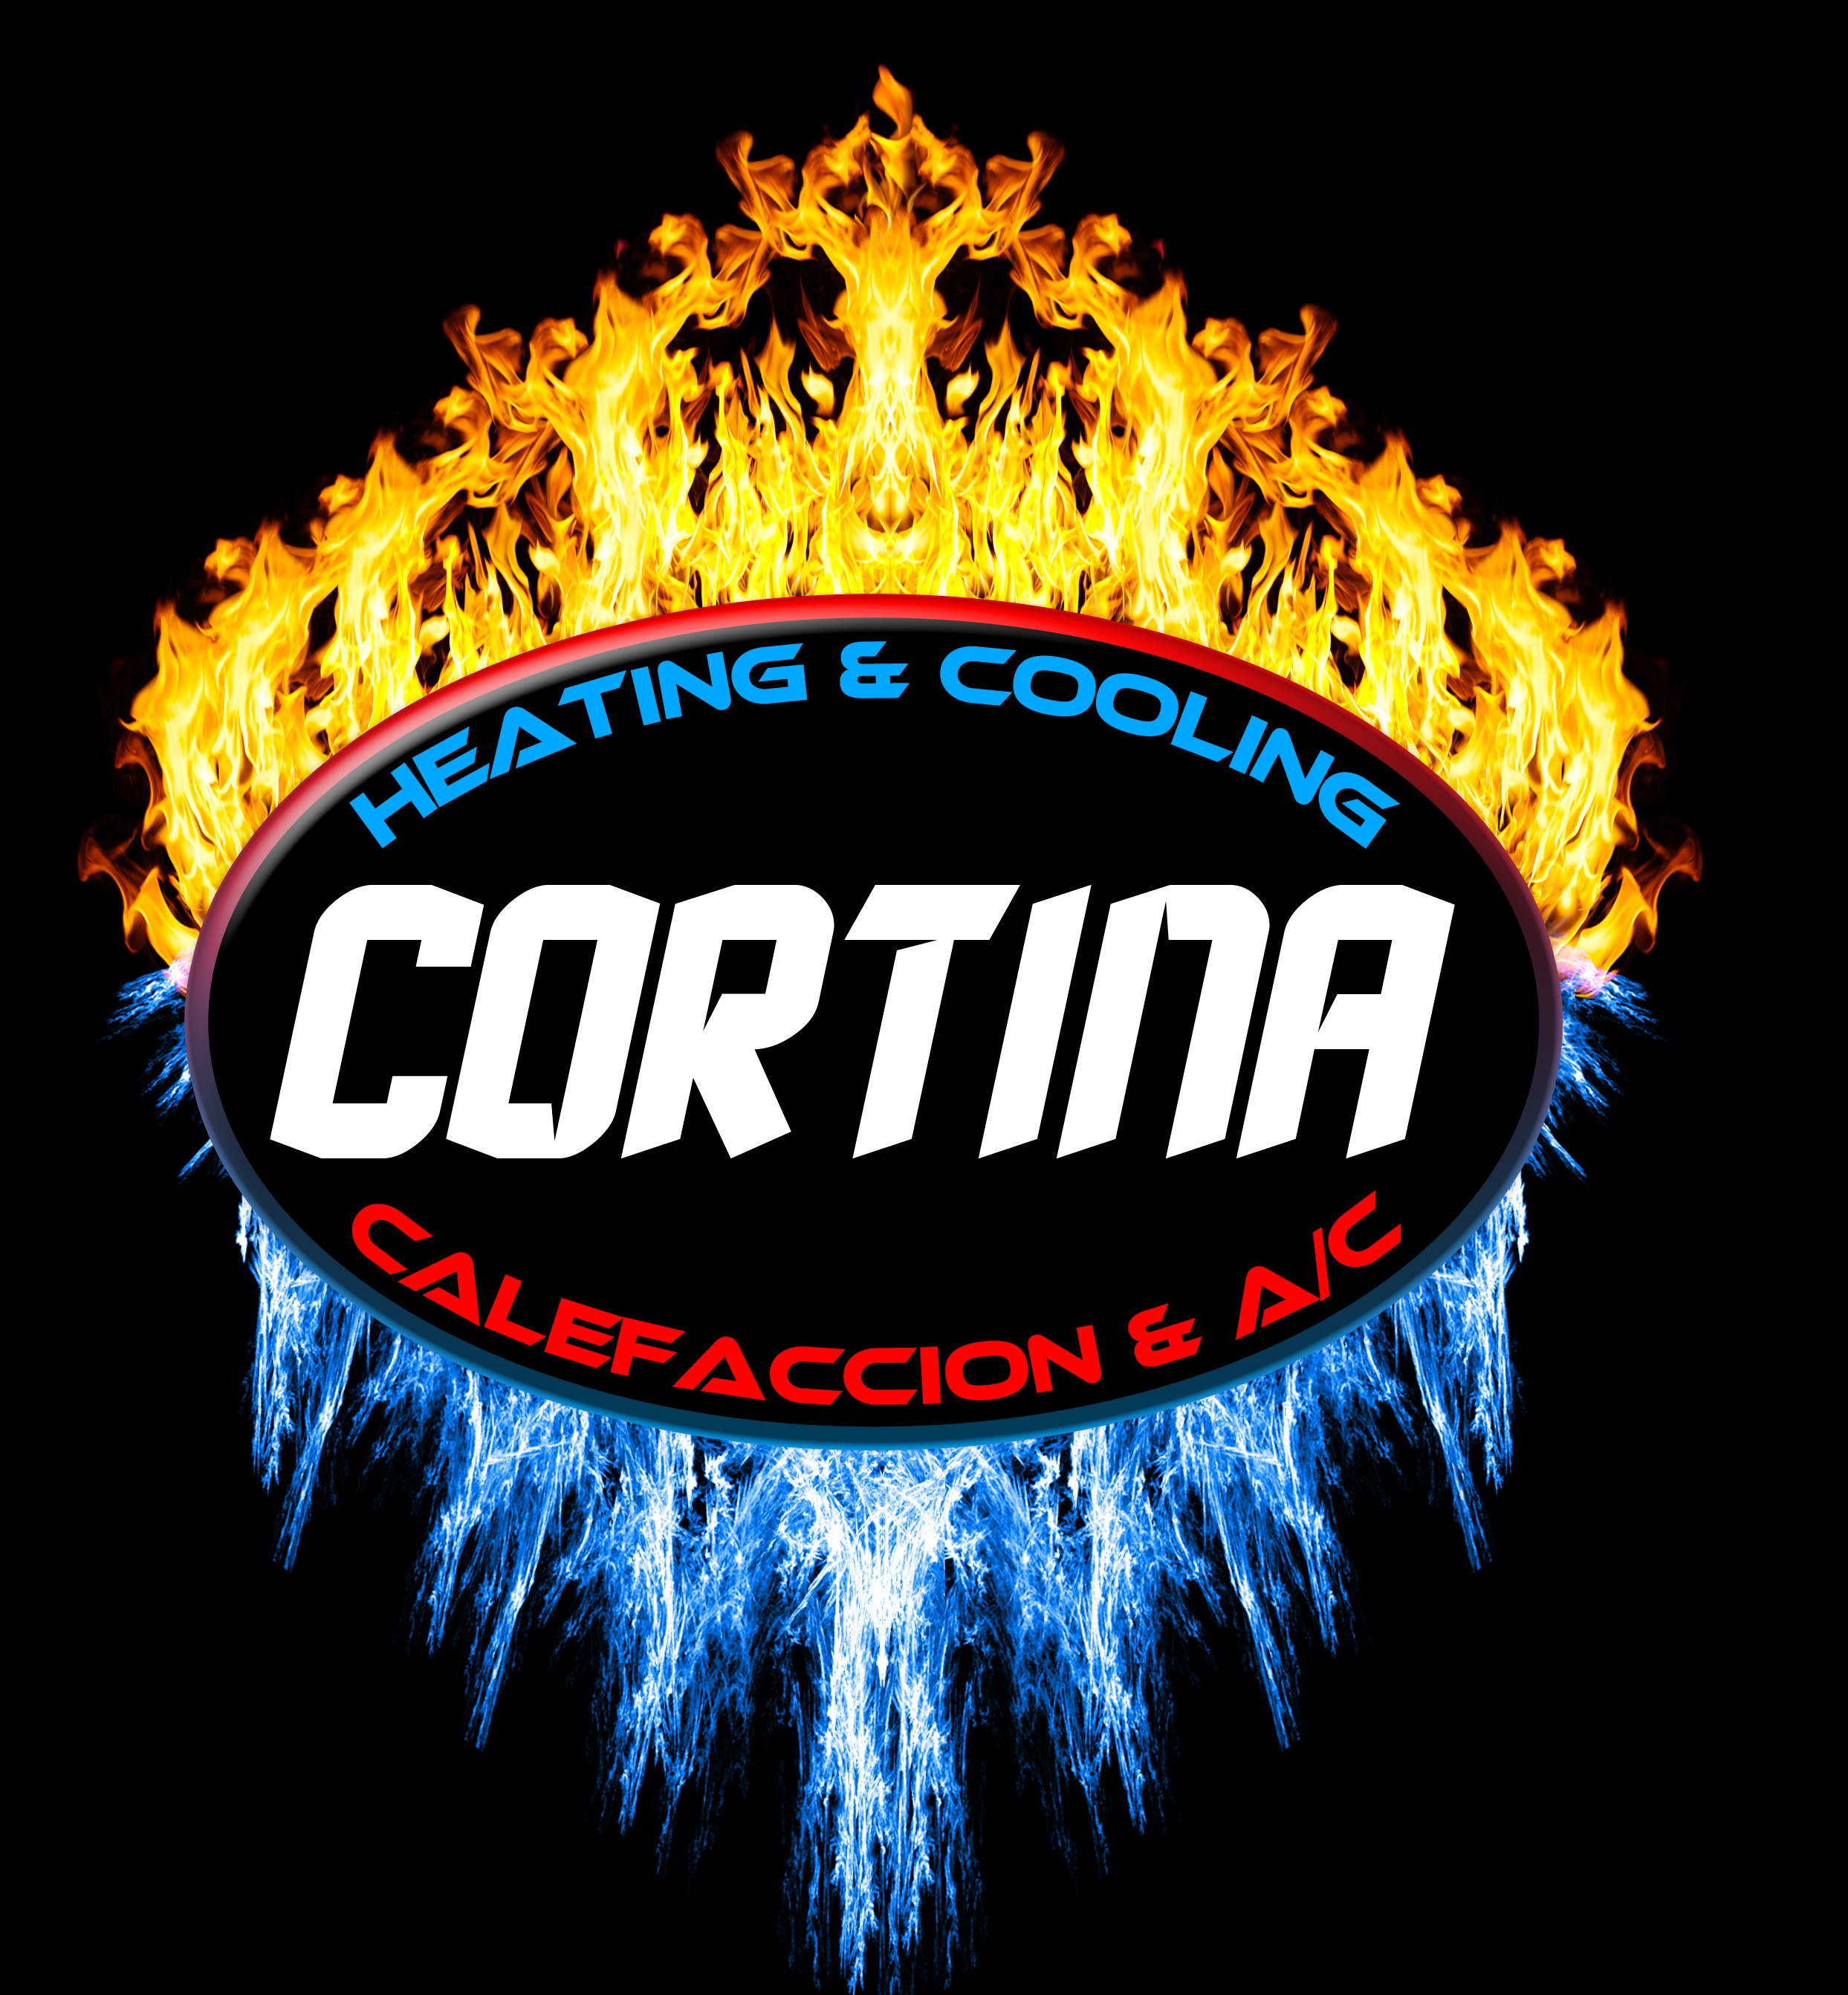 Cortina Heating and Cooling logo